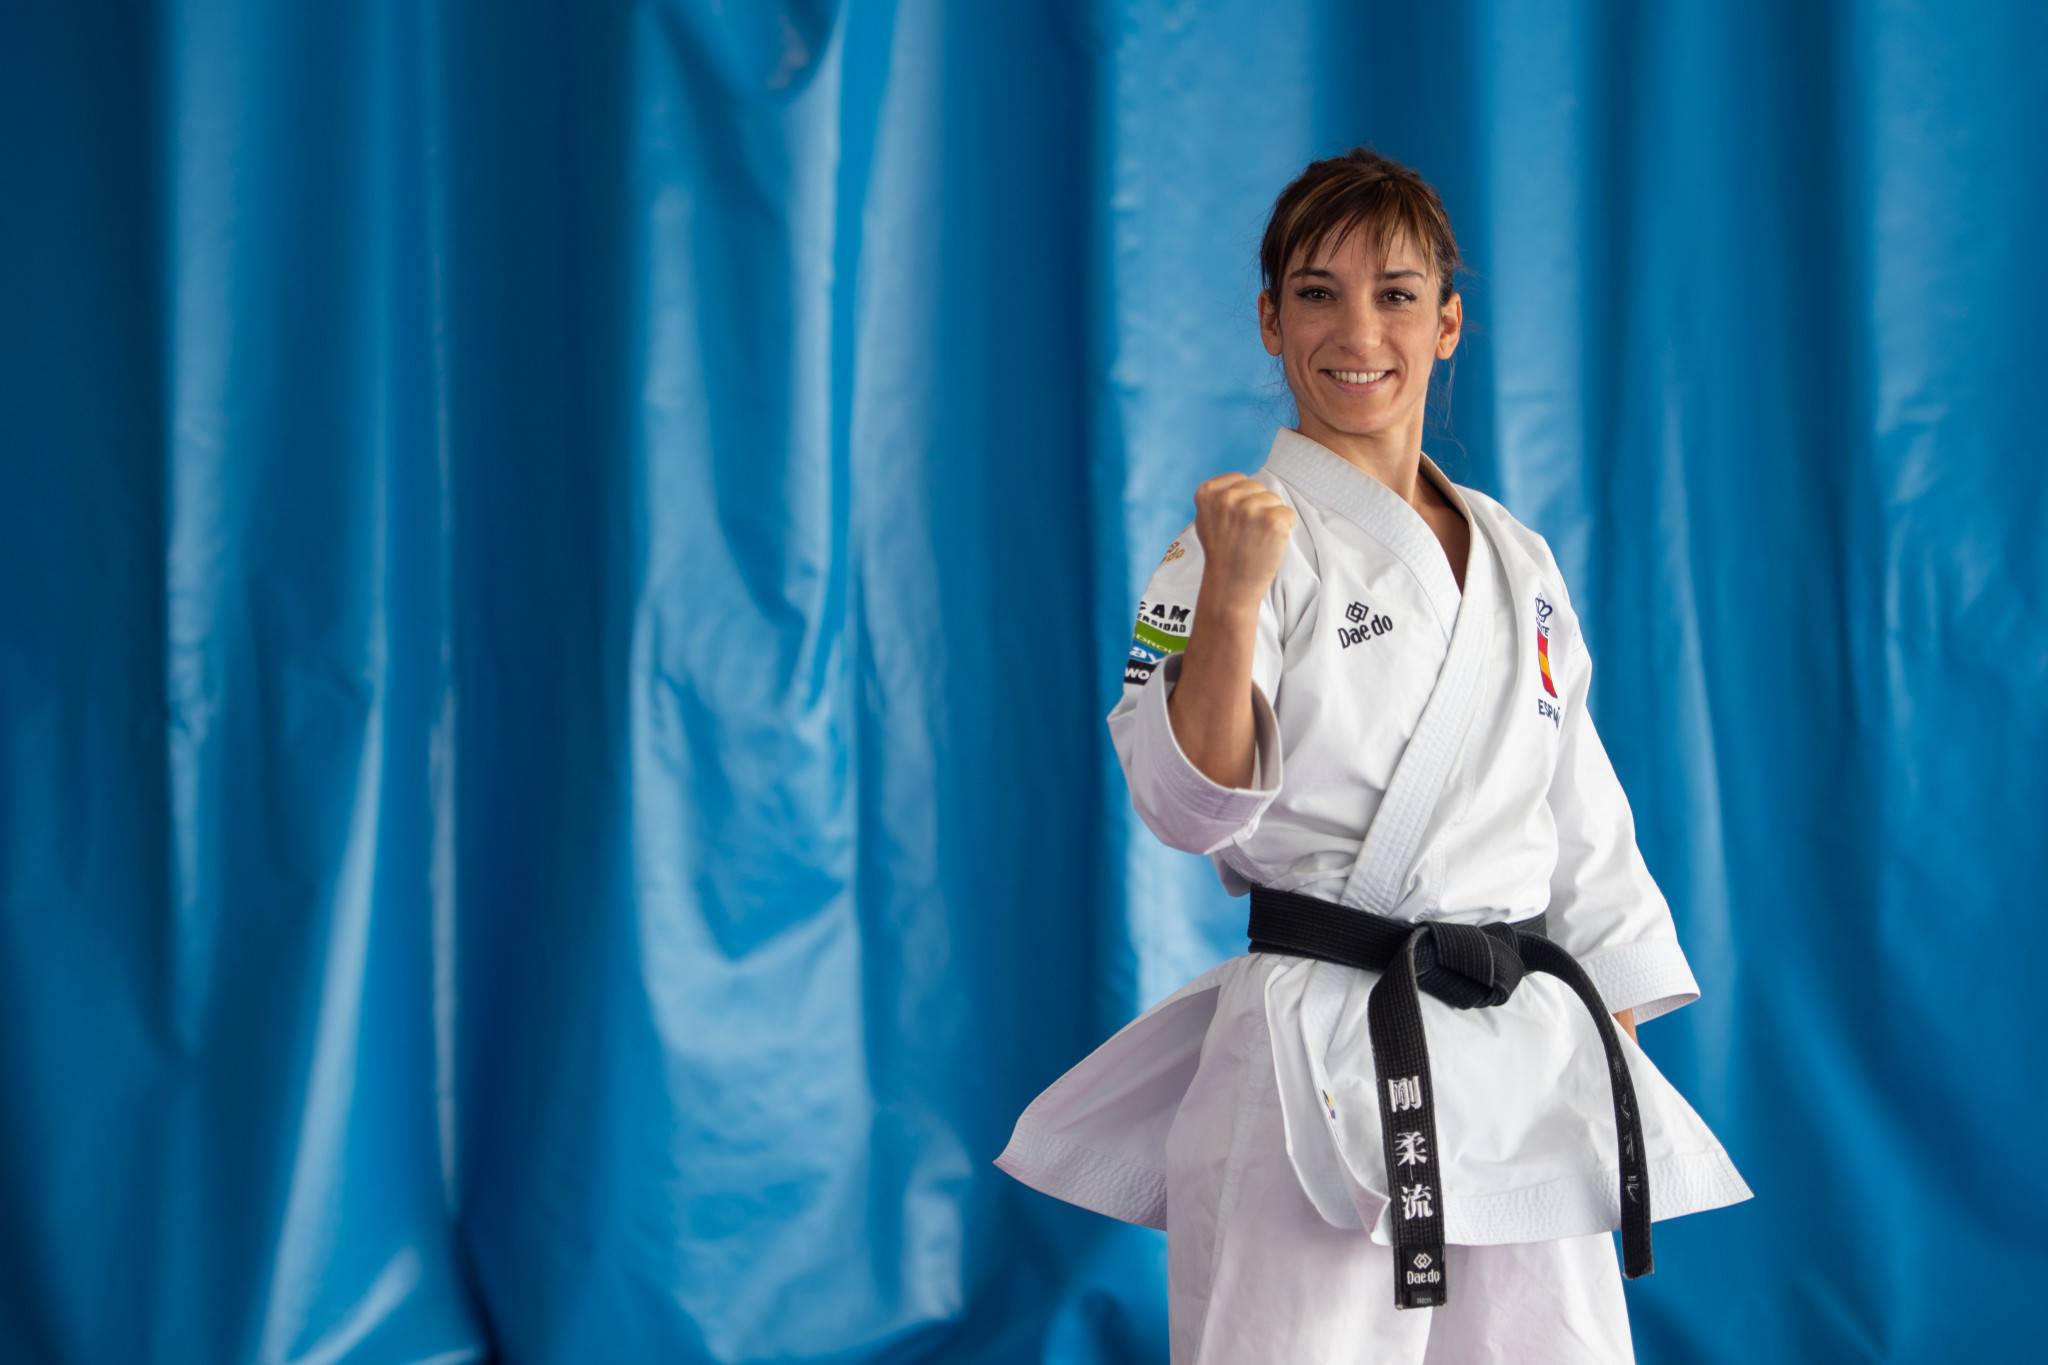 WKF confirm first 40 qualifiers for Tokyo 2020 karate competition